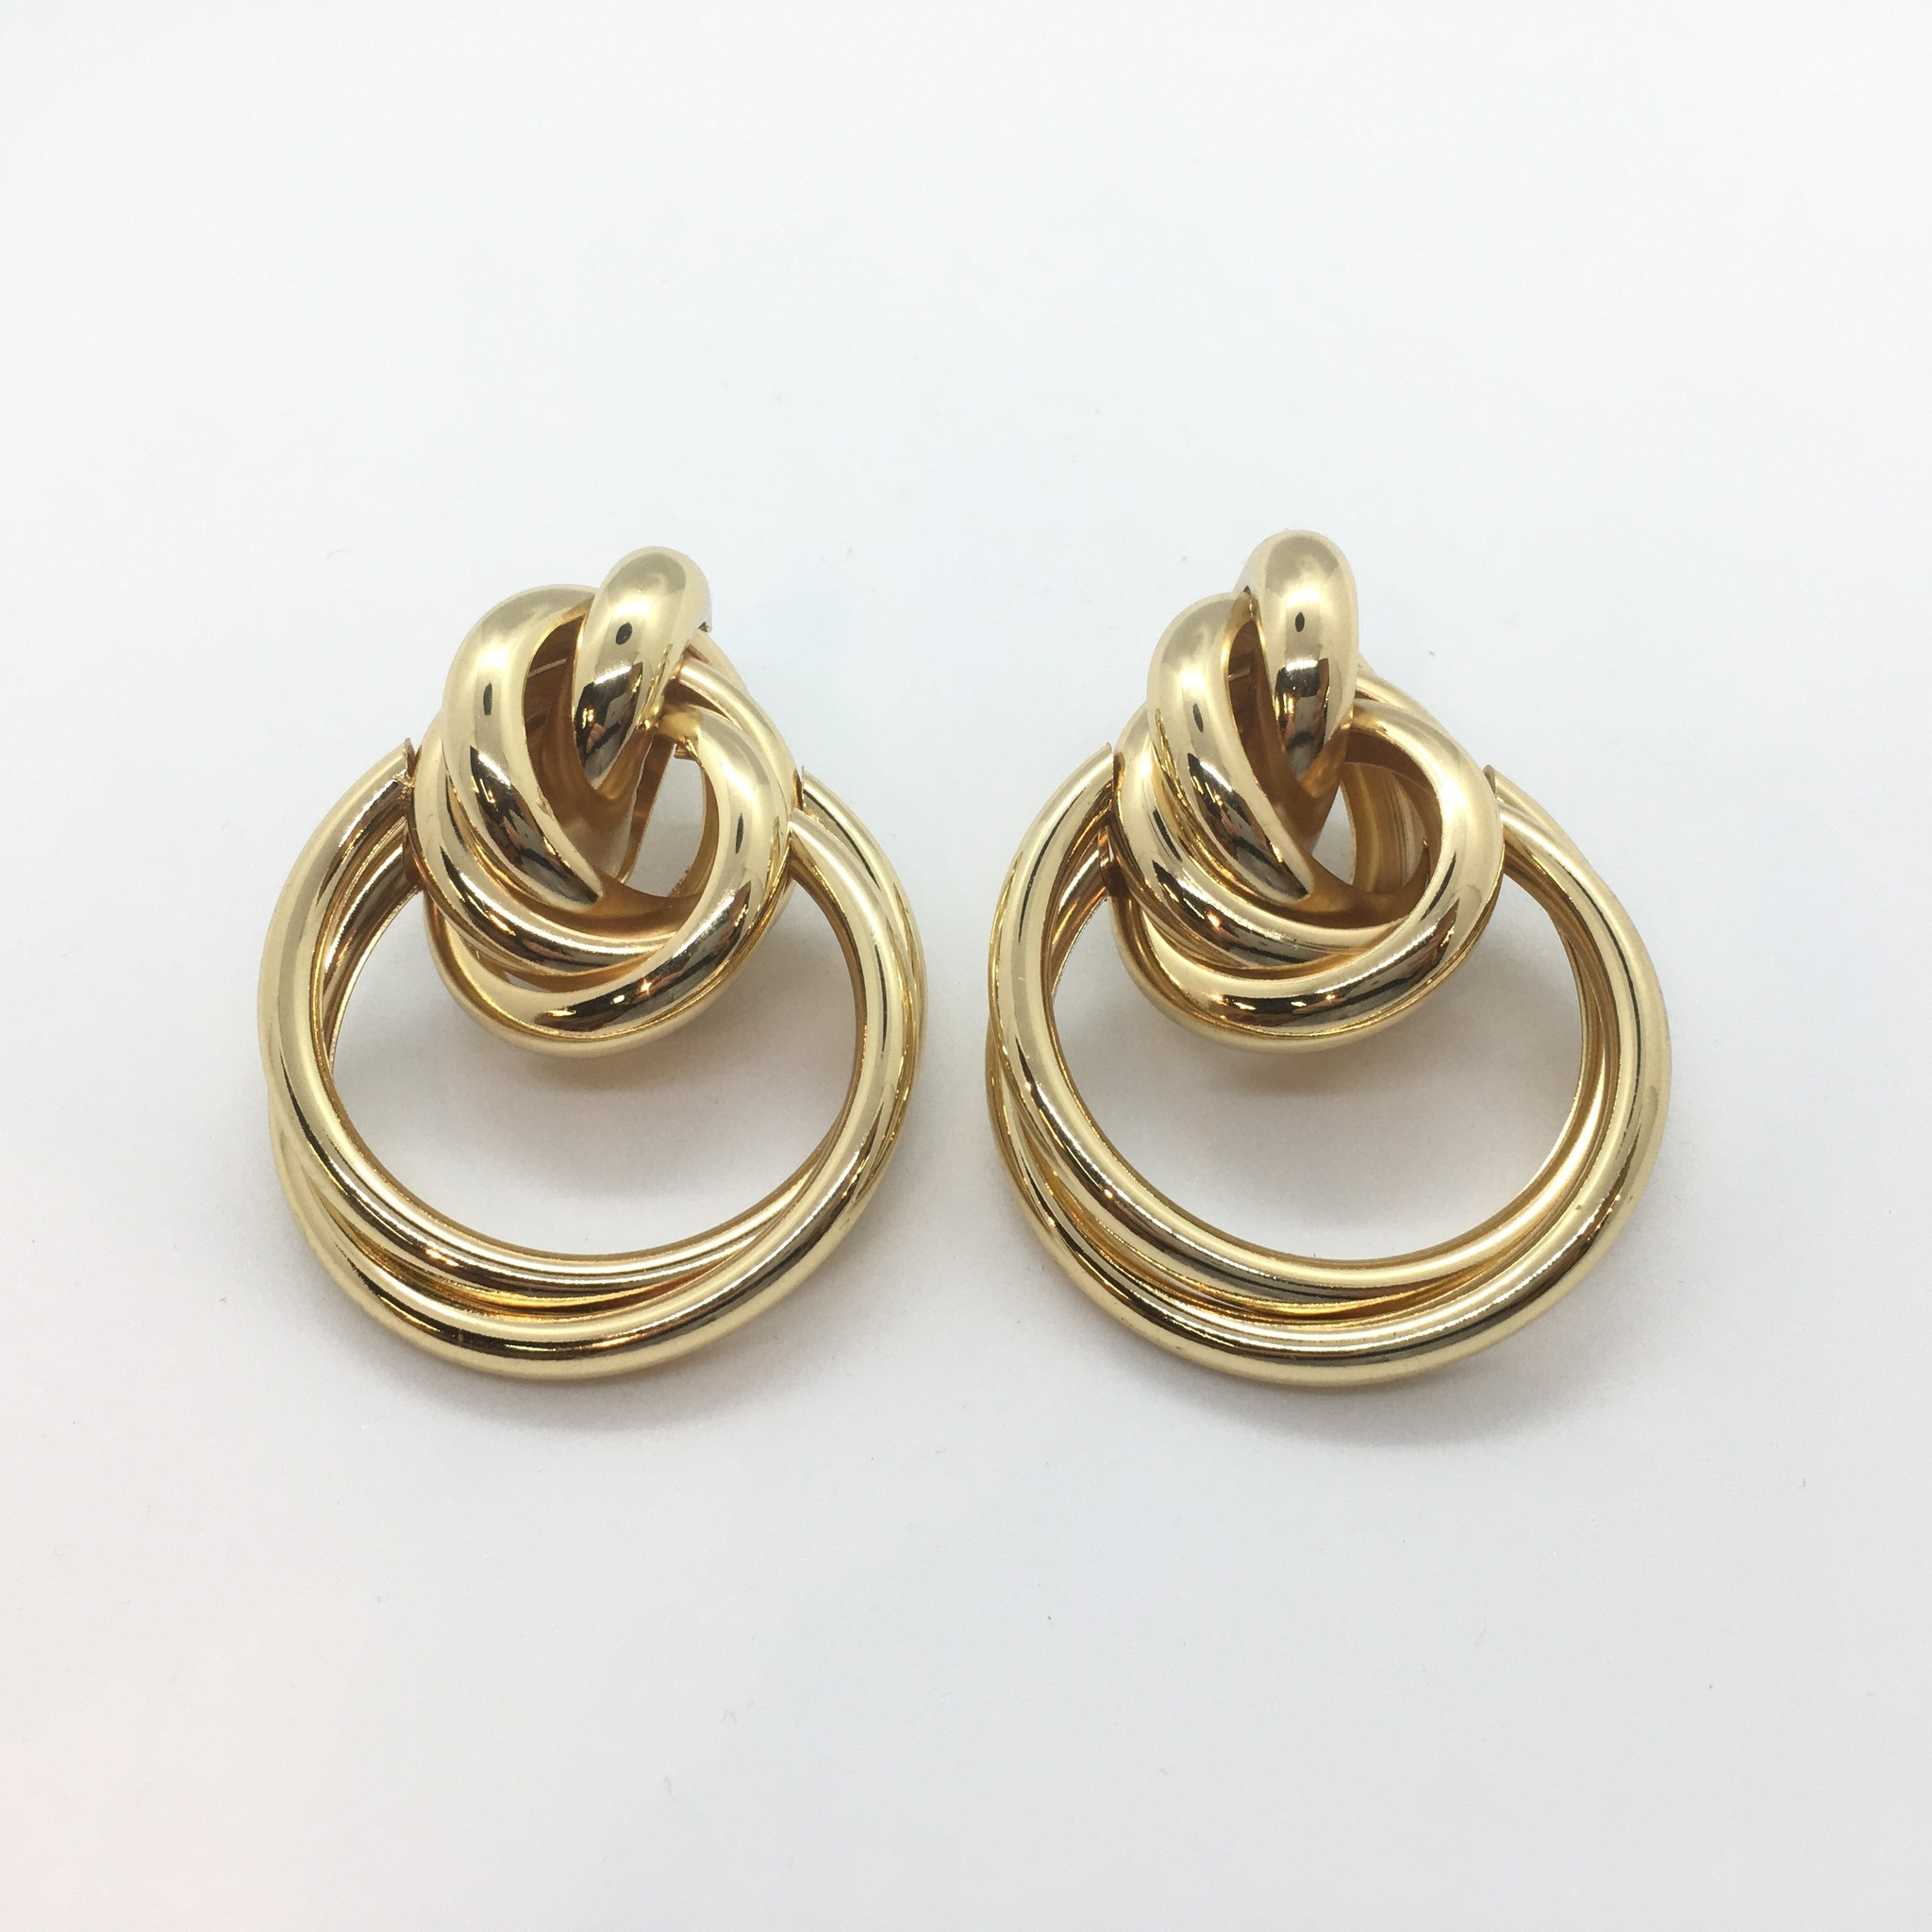 Sooley Designs Gold Loop Earrings